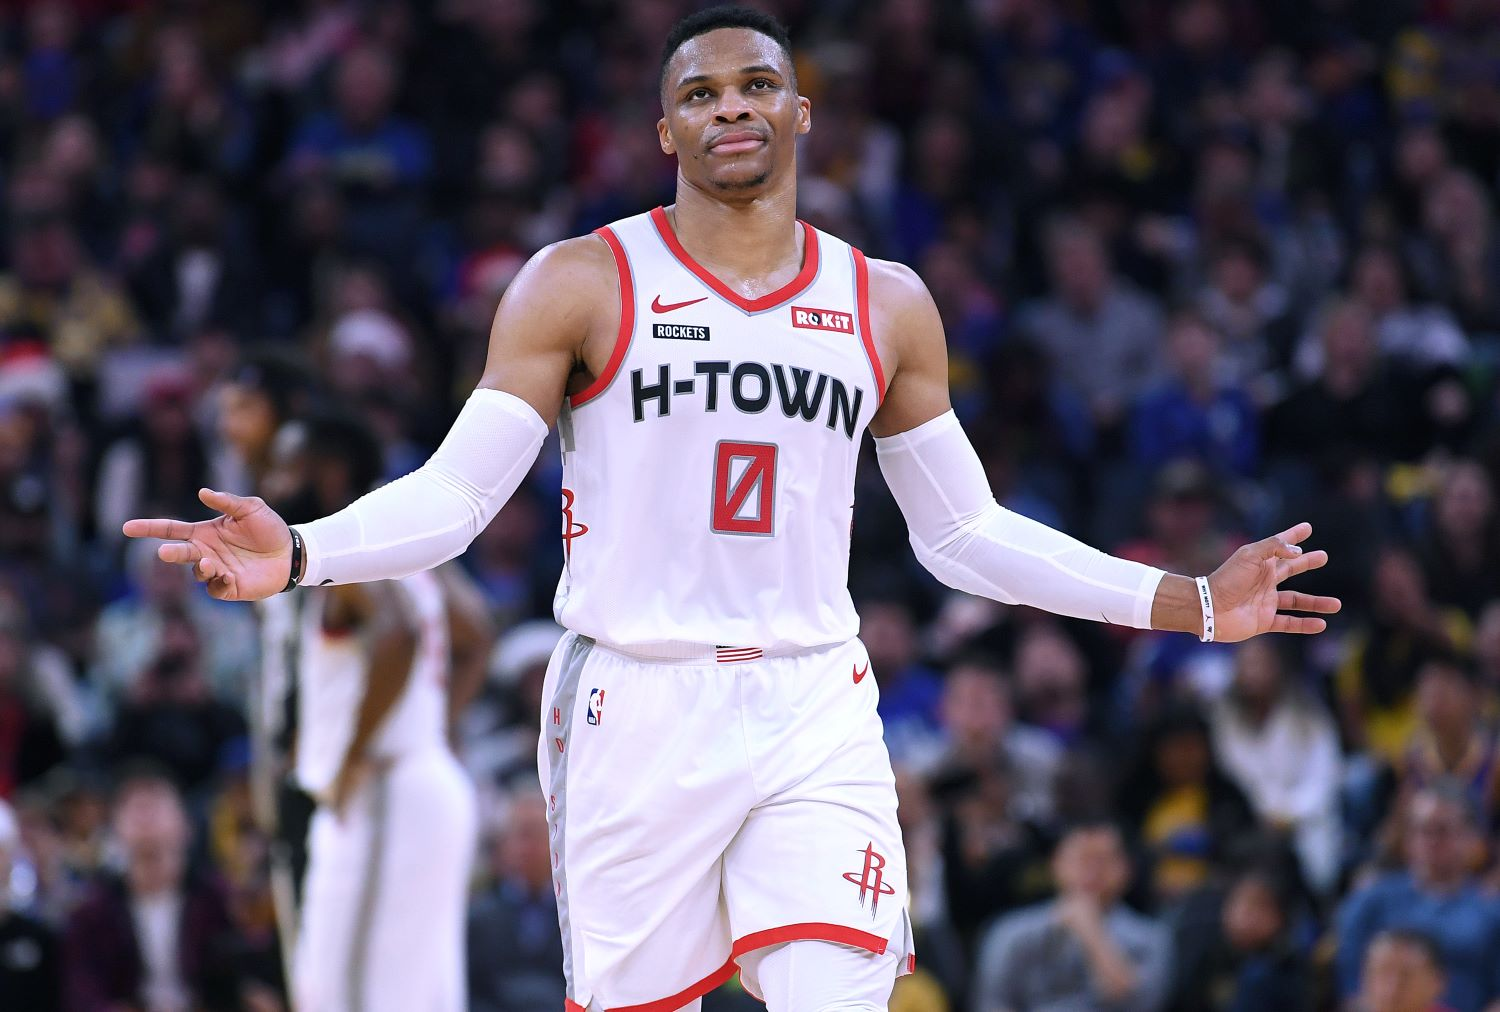 With $132 million remaining on his contract, Russell Westbrook may have a hard time finding a way to escape from the Houston Rockets if NBA teams don't want to pay that price.